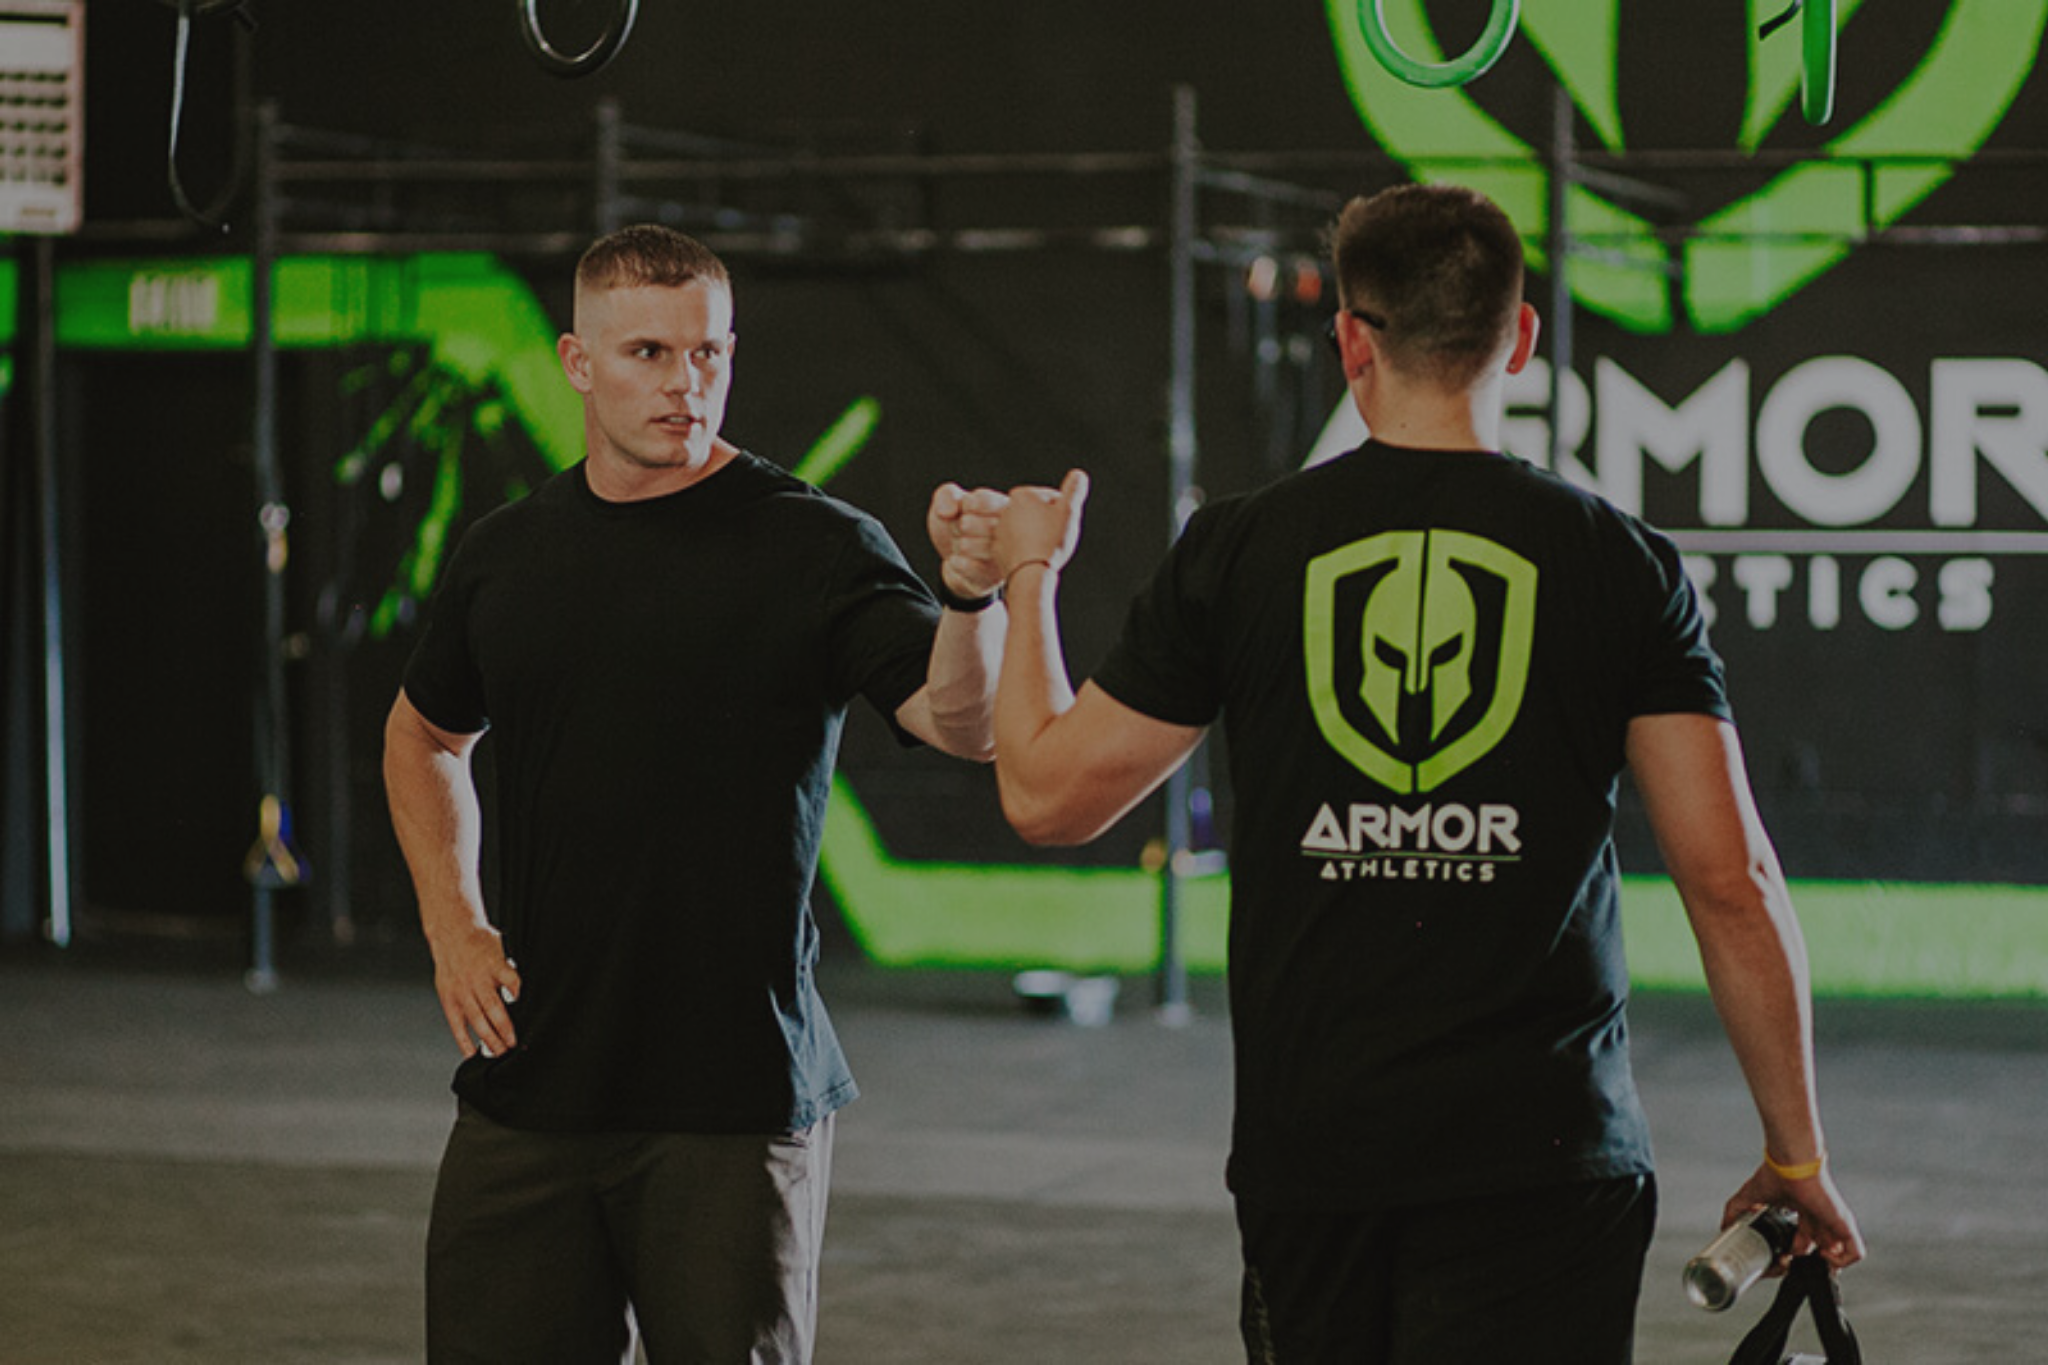 high five, teamwork, crossfit, class, training, workout, fitness, health, coaching, gym, tacoma, team